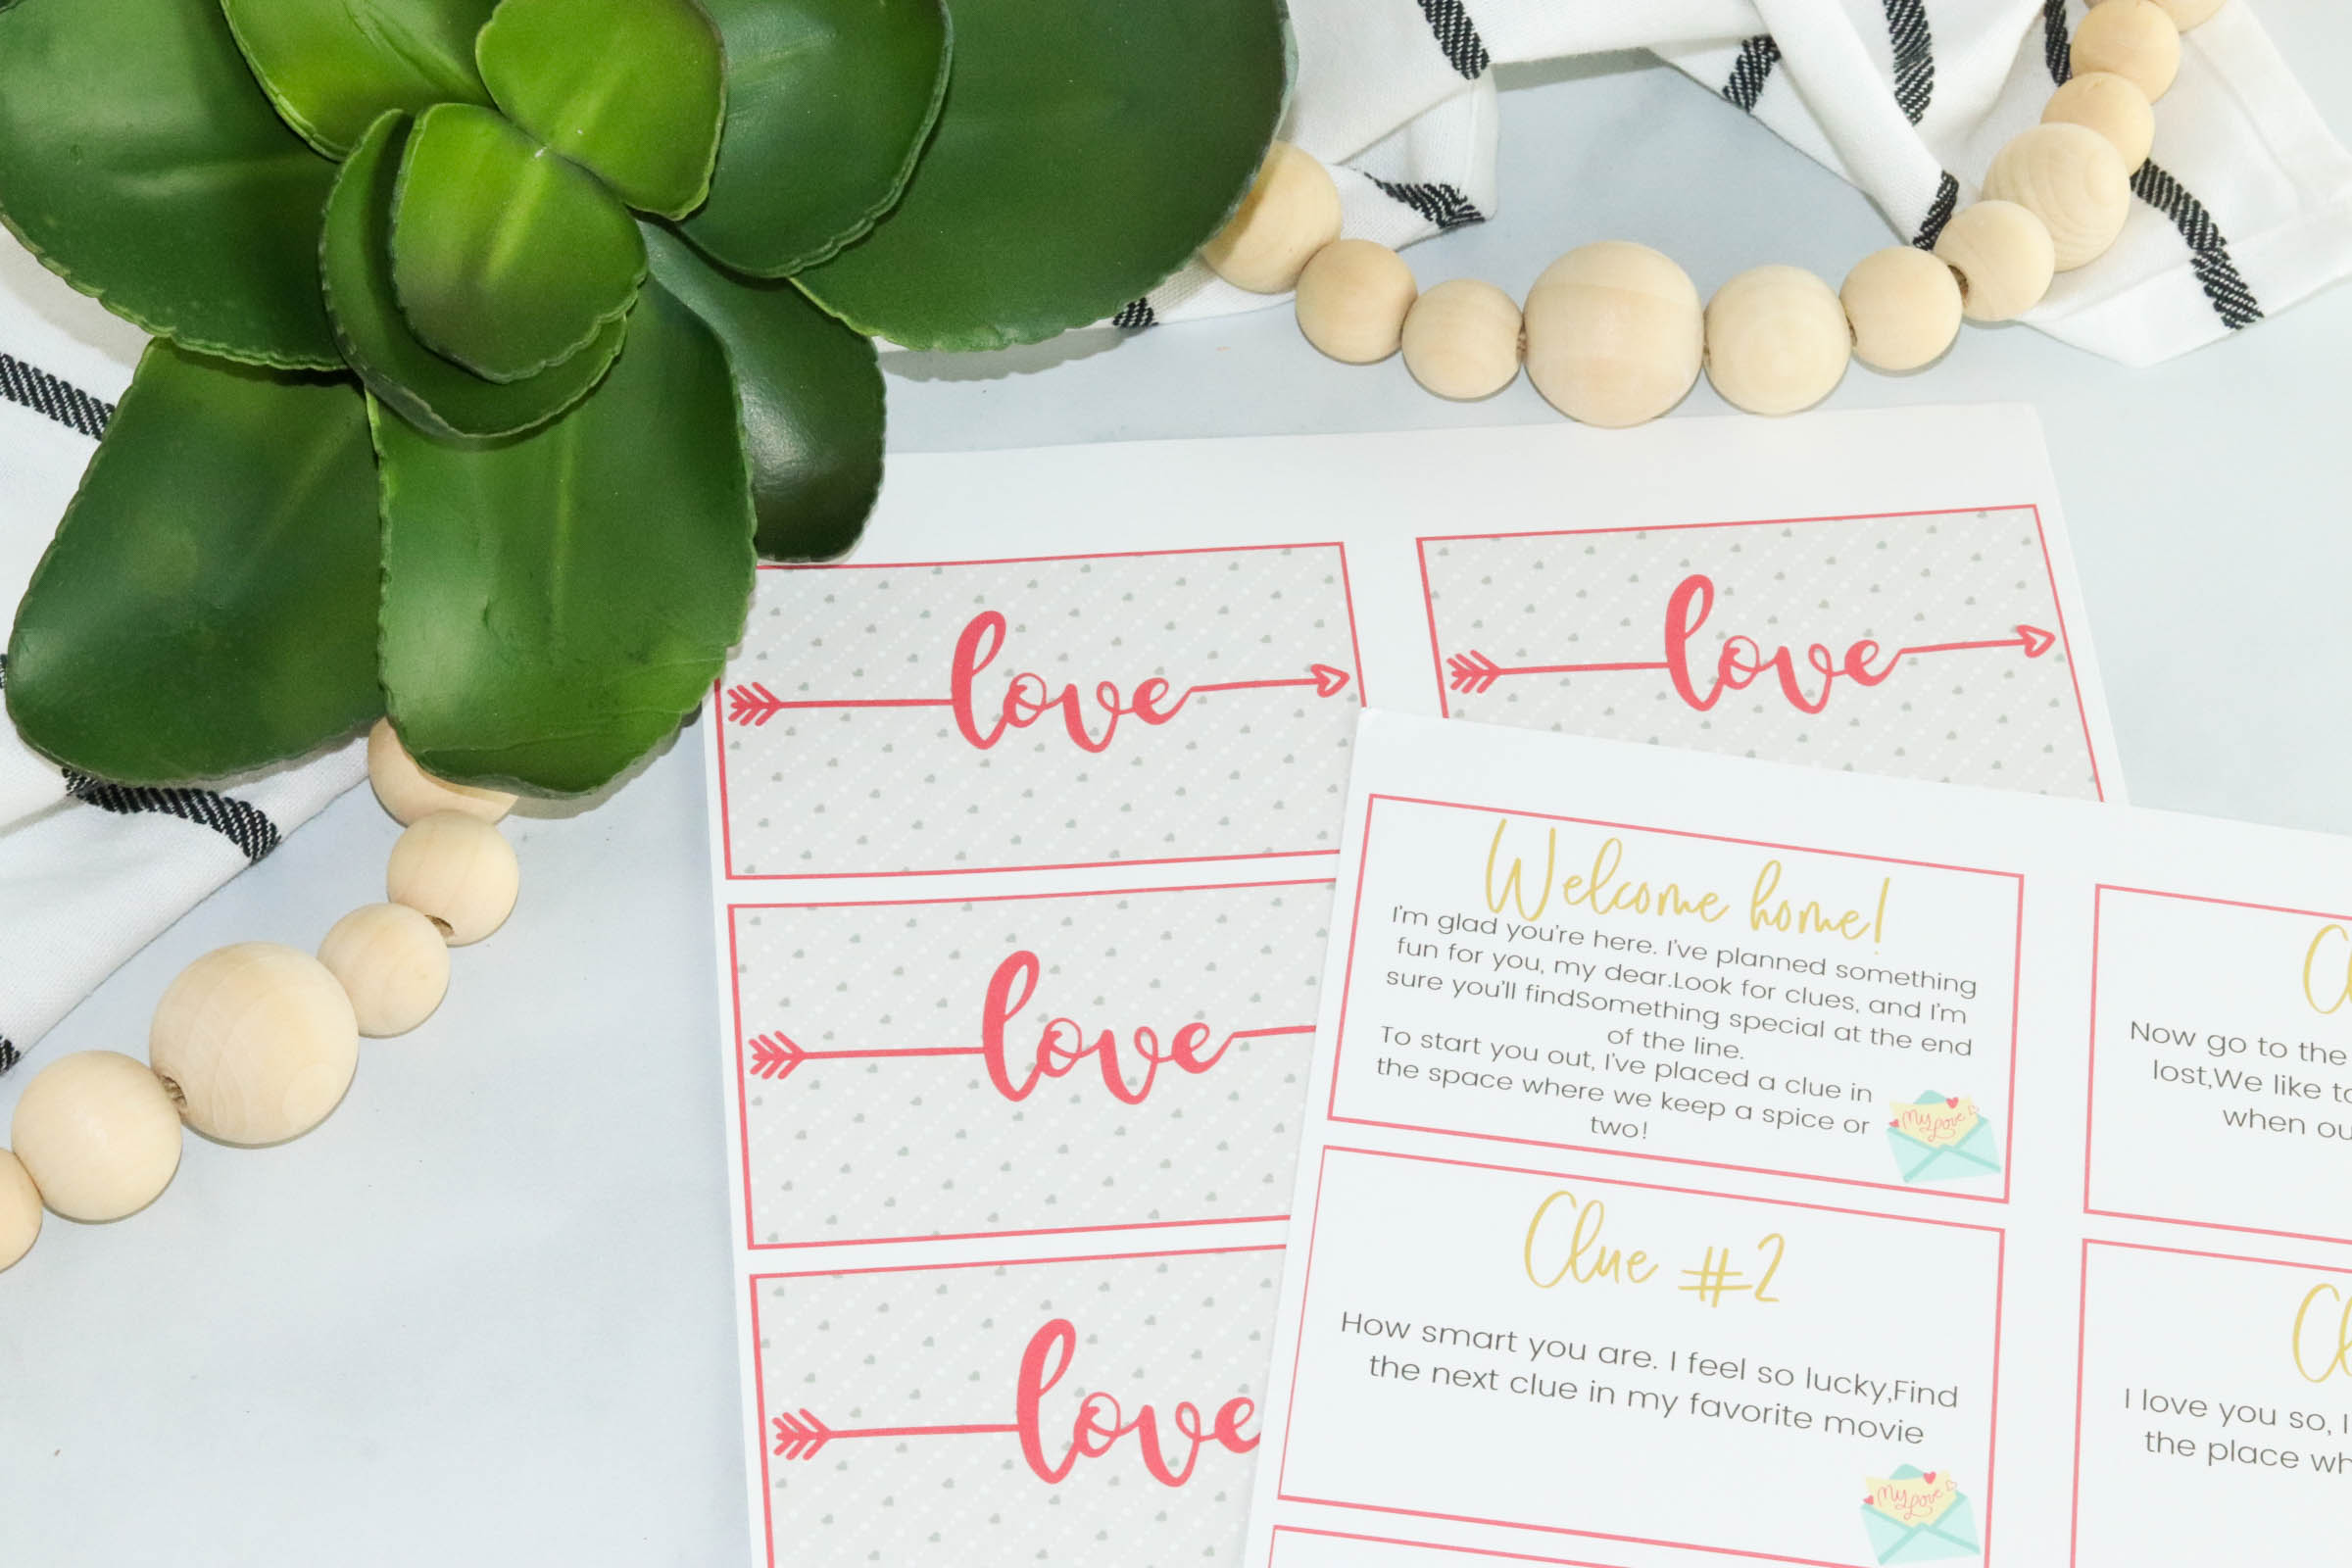 Are you looking for a fun way to surprise the one you love? Create a cute date night or special occasion with this adorable romantic scavenger hunt! Your significant other will love where this fun romantic scavenger hunt takes you.